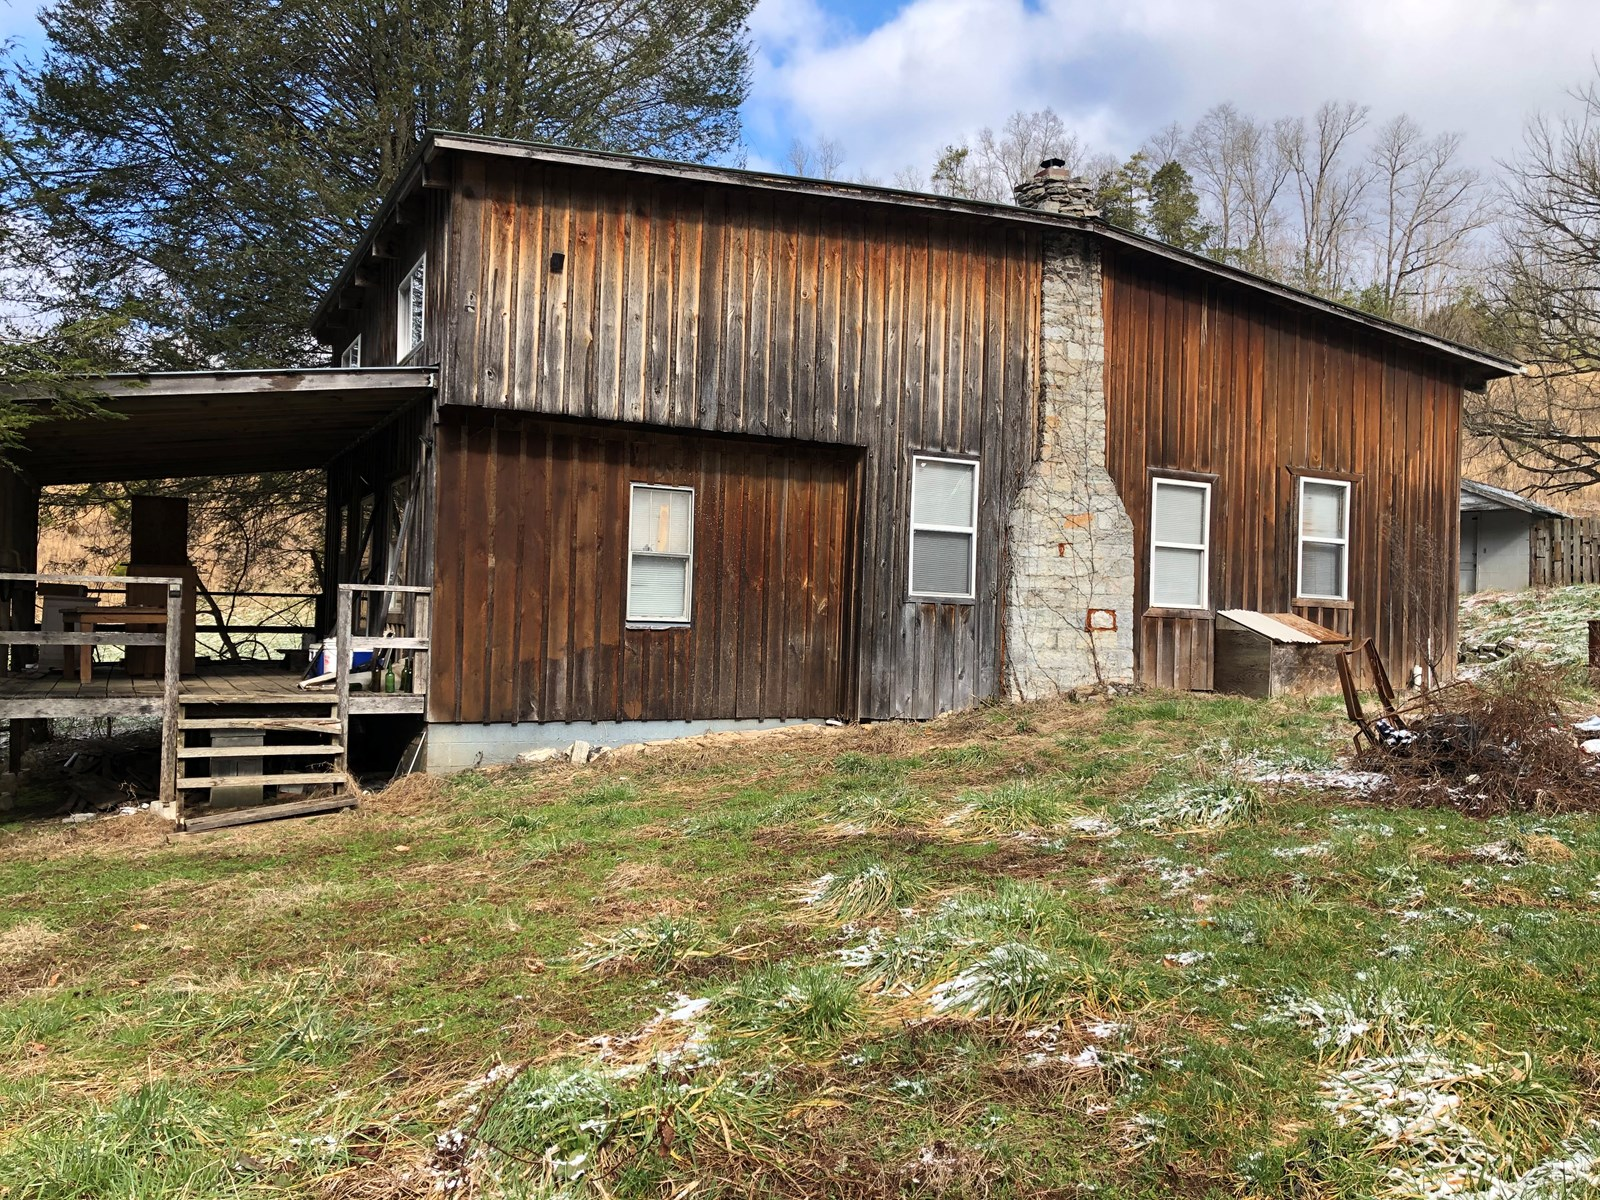 3 BR, 1 BA Fixer Upper For Sale in Eidson, TN